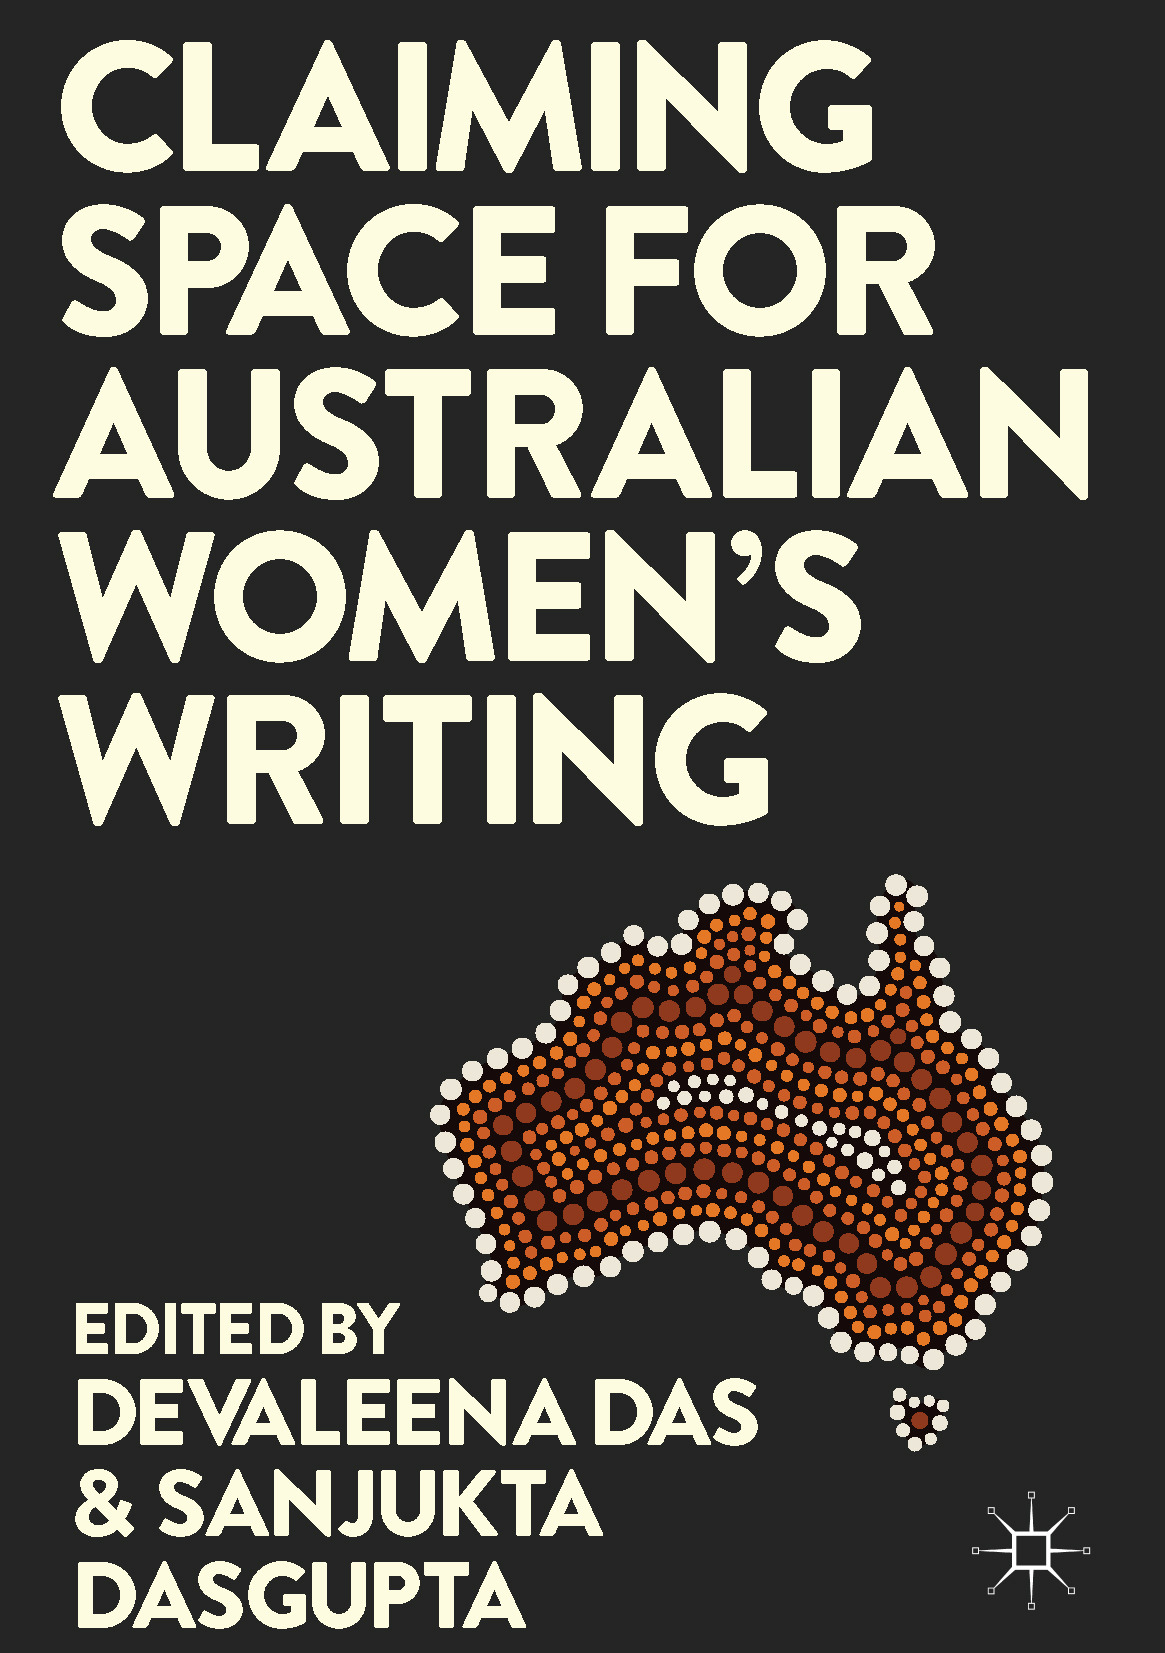 Das, Devaleena - Claiming Space for Australian Women's Writing, ebook